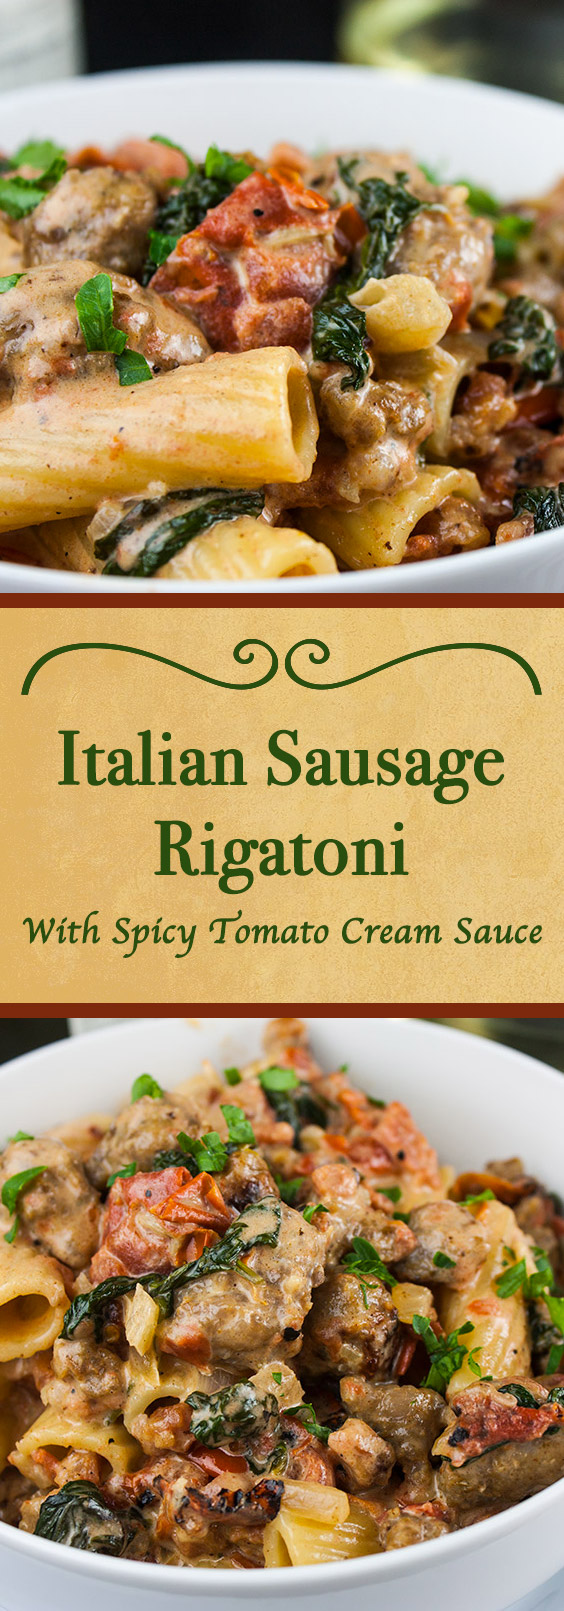 Italian Sausage Rigatoni with Spicy Tomato Cream Sauce - Easy, hearty, delicious pasta dinner to please everyone!